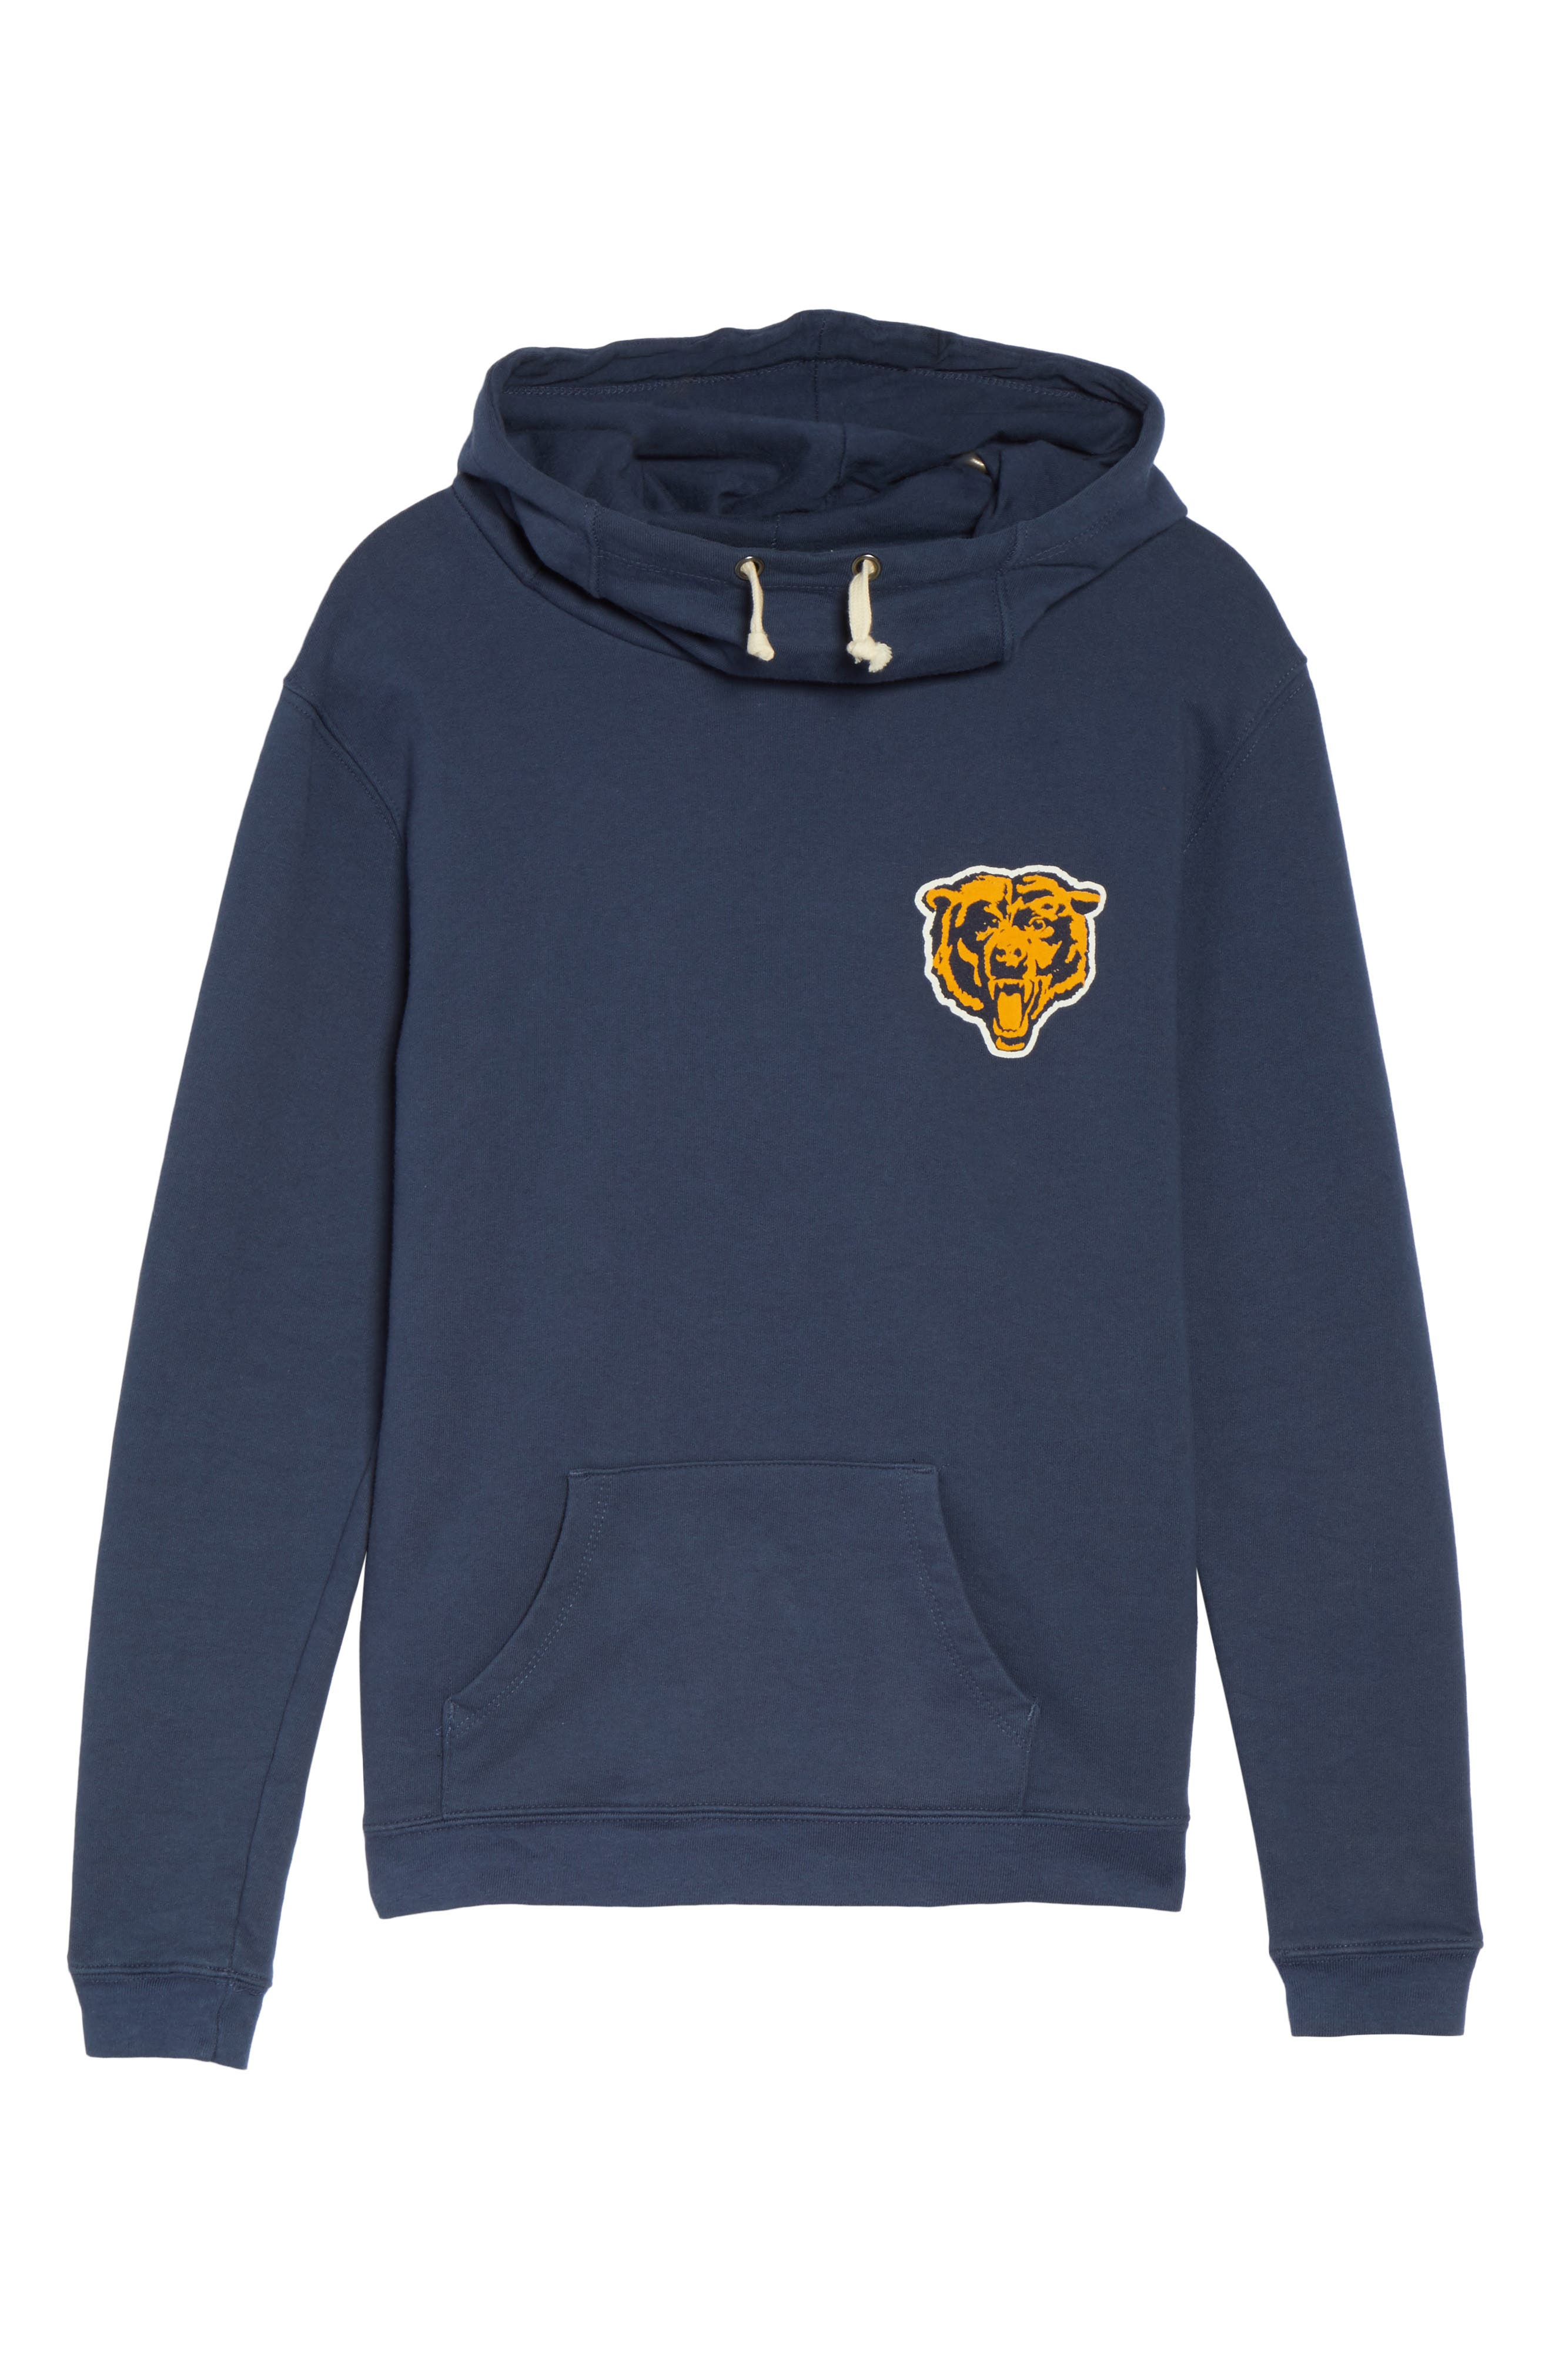 NFL Chicago Bears Sunday Hoodie,                             Alternate thumbnail 6, color,                             408